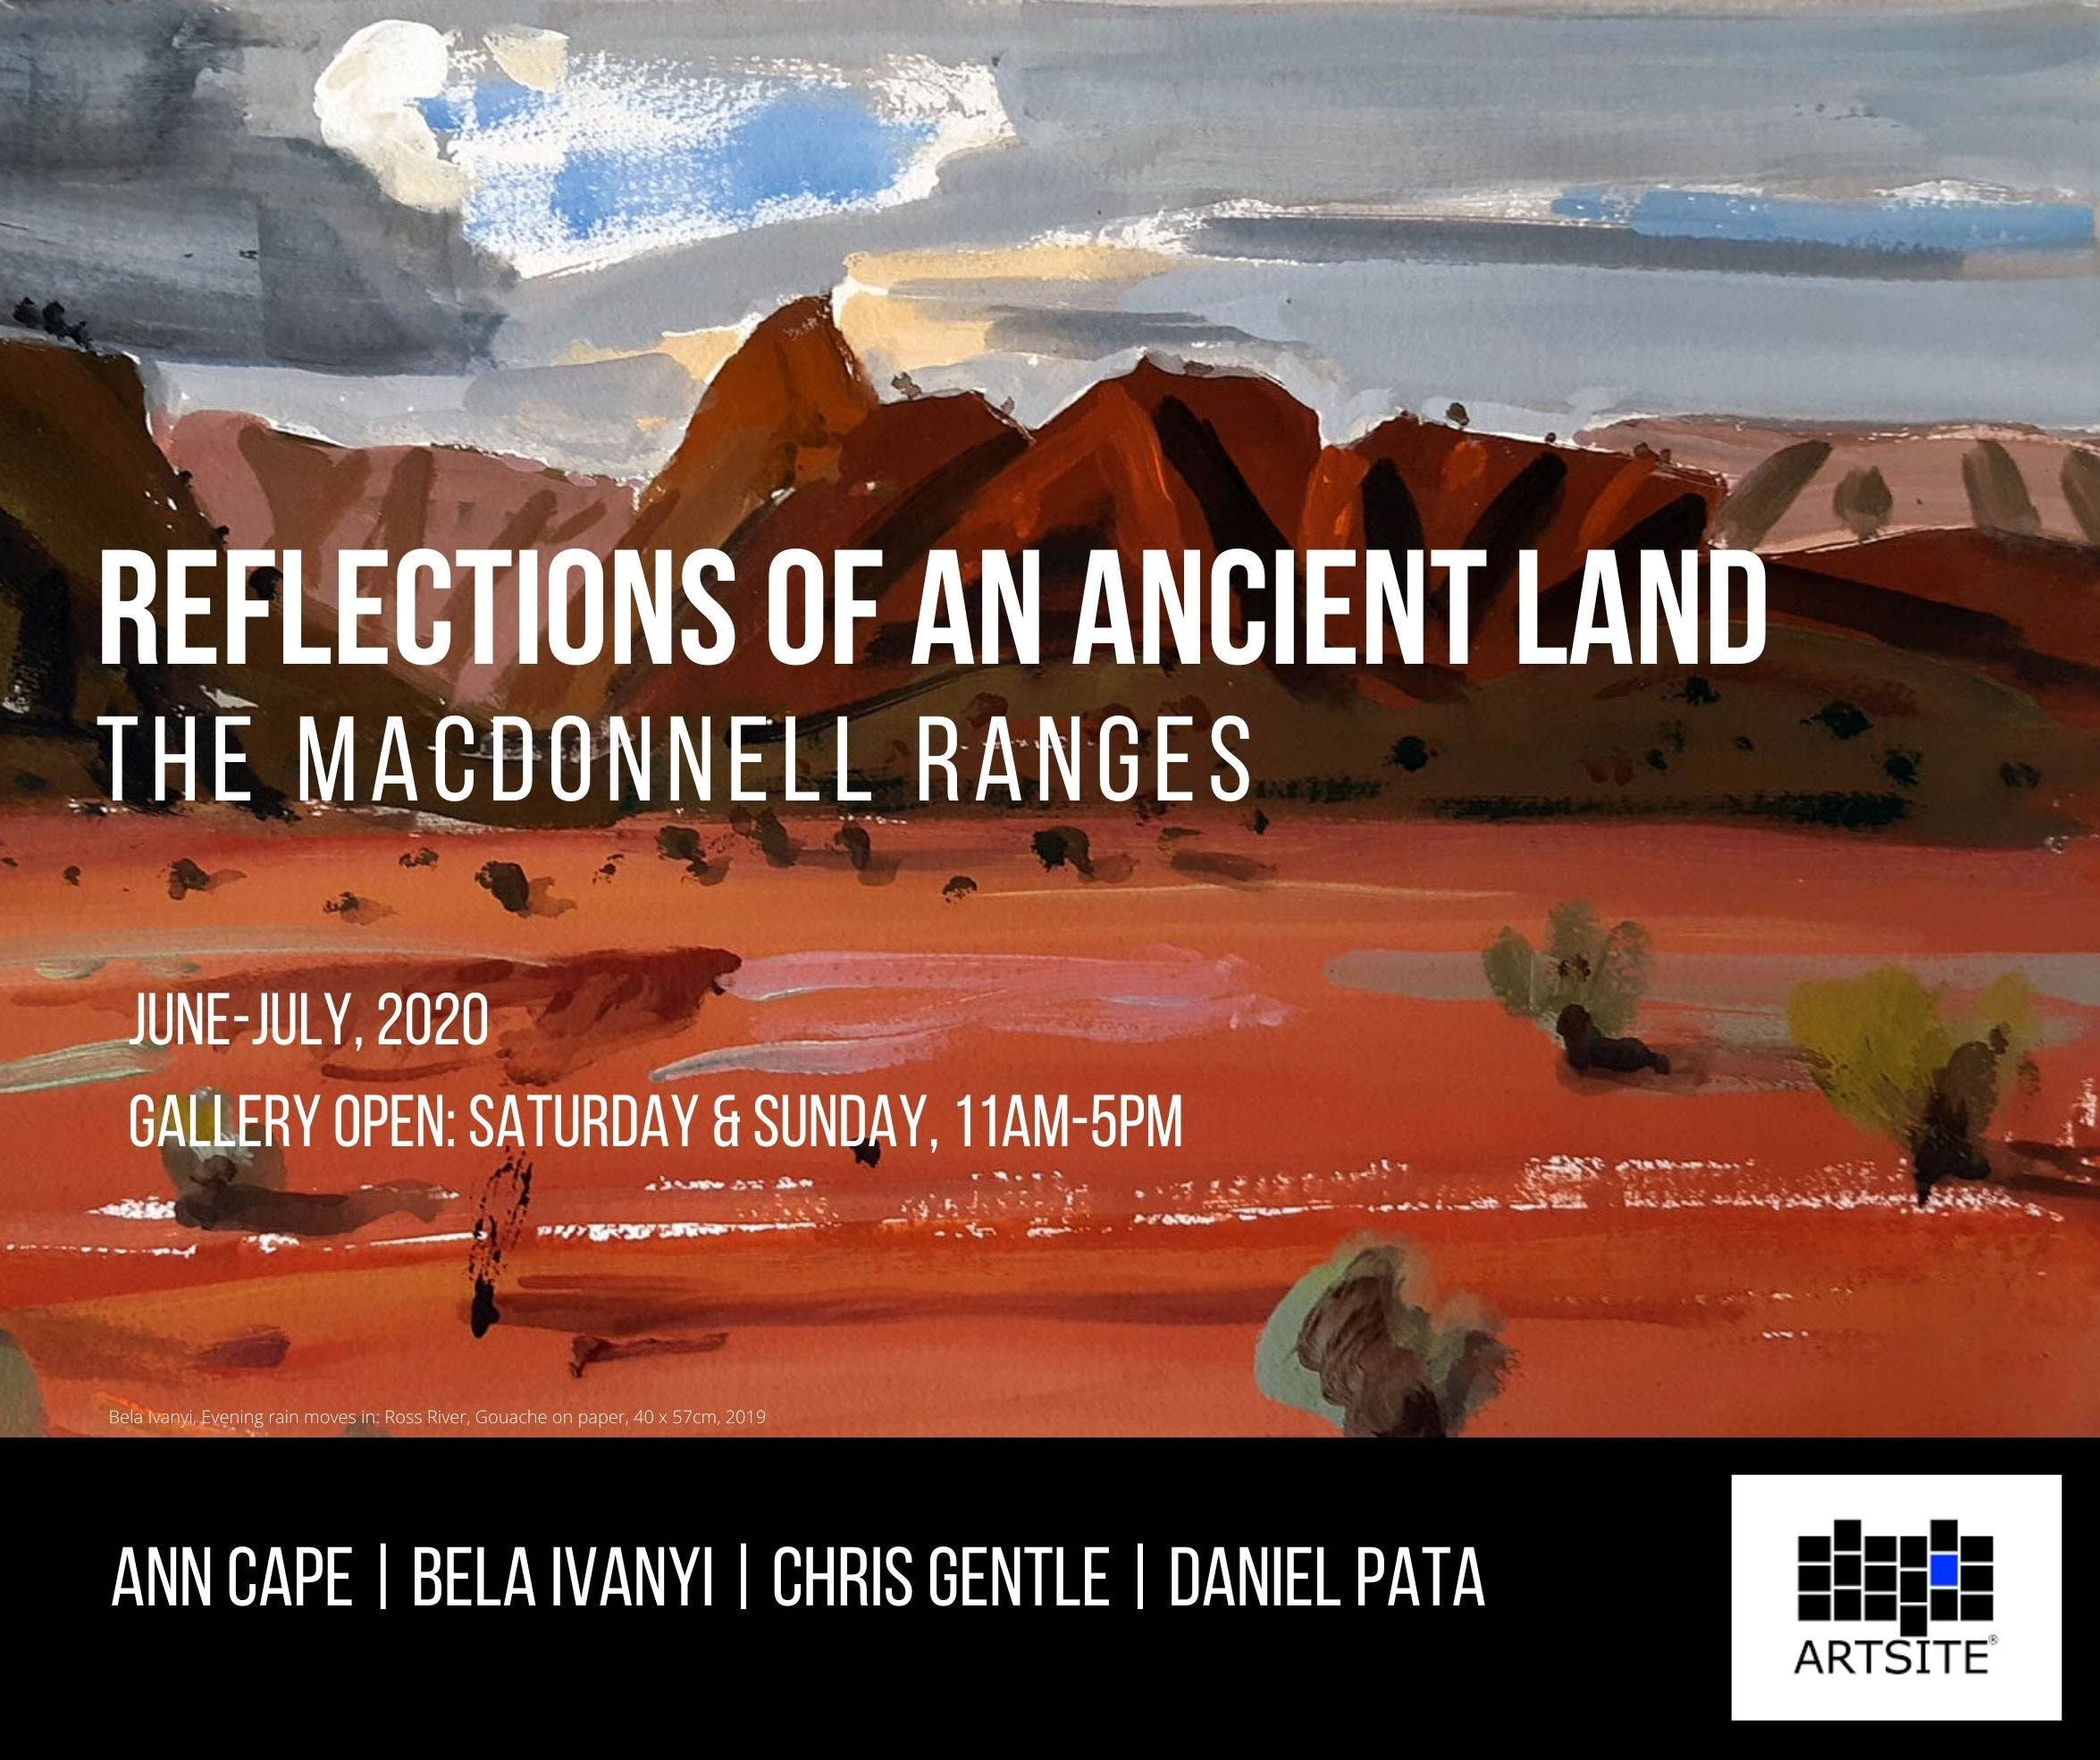 Reflections of An Ancient Land The MacDonnell Ranges - Tourism Canberra